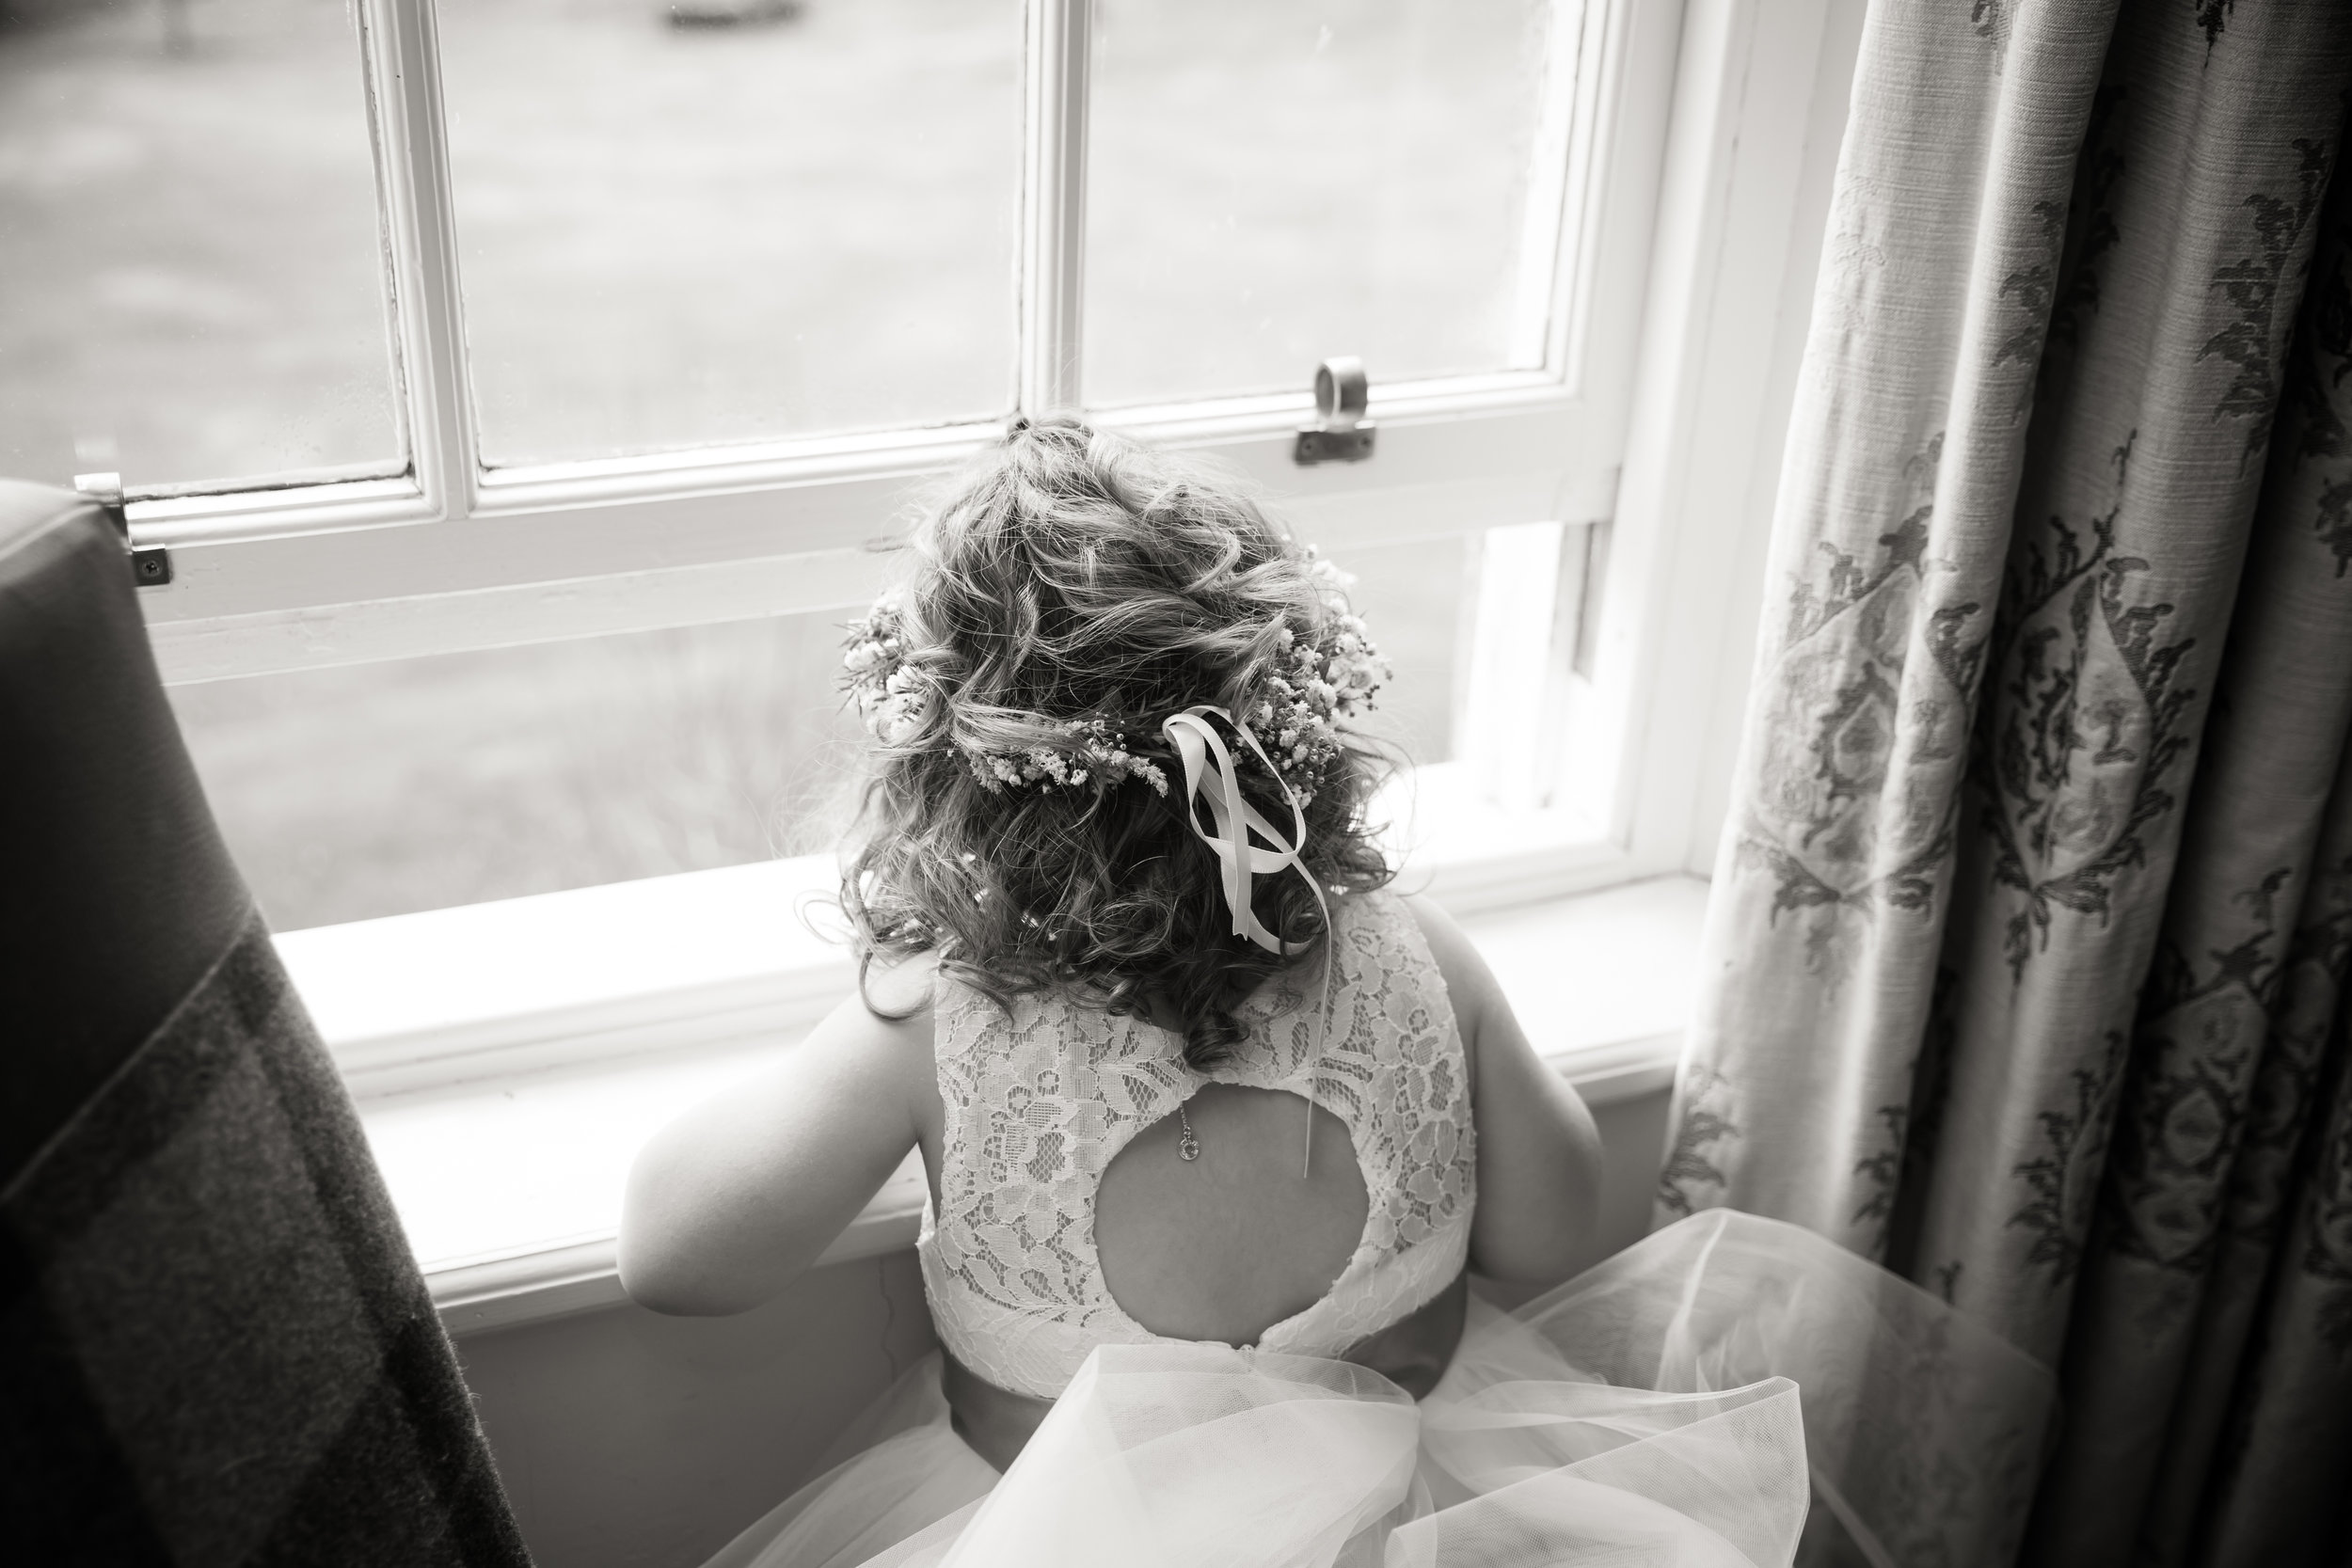 Danirosephotography.weddingphotographer.dycephotographer.aberdeenweddingphotography.pittodriehousewedding10.jpg